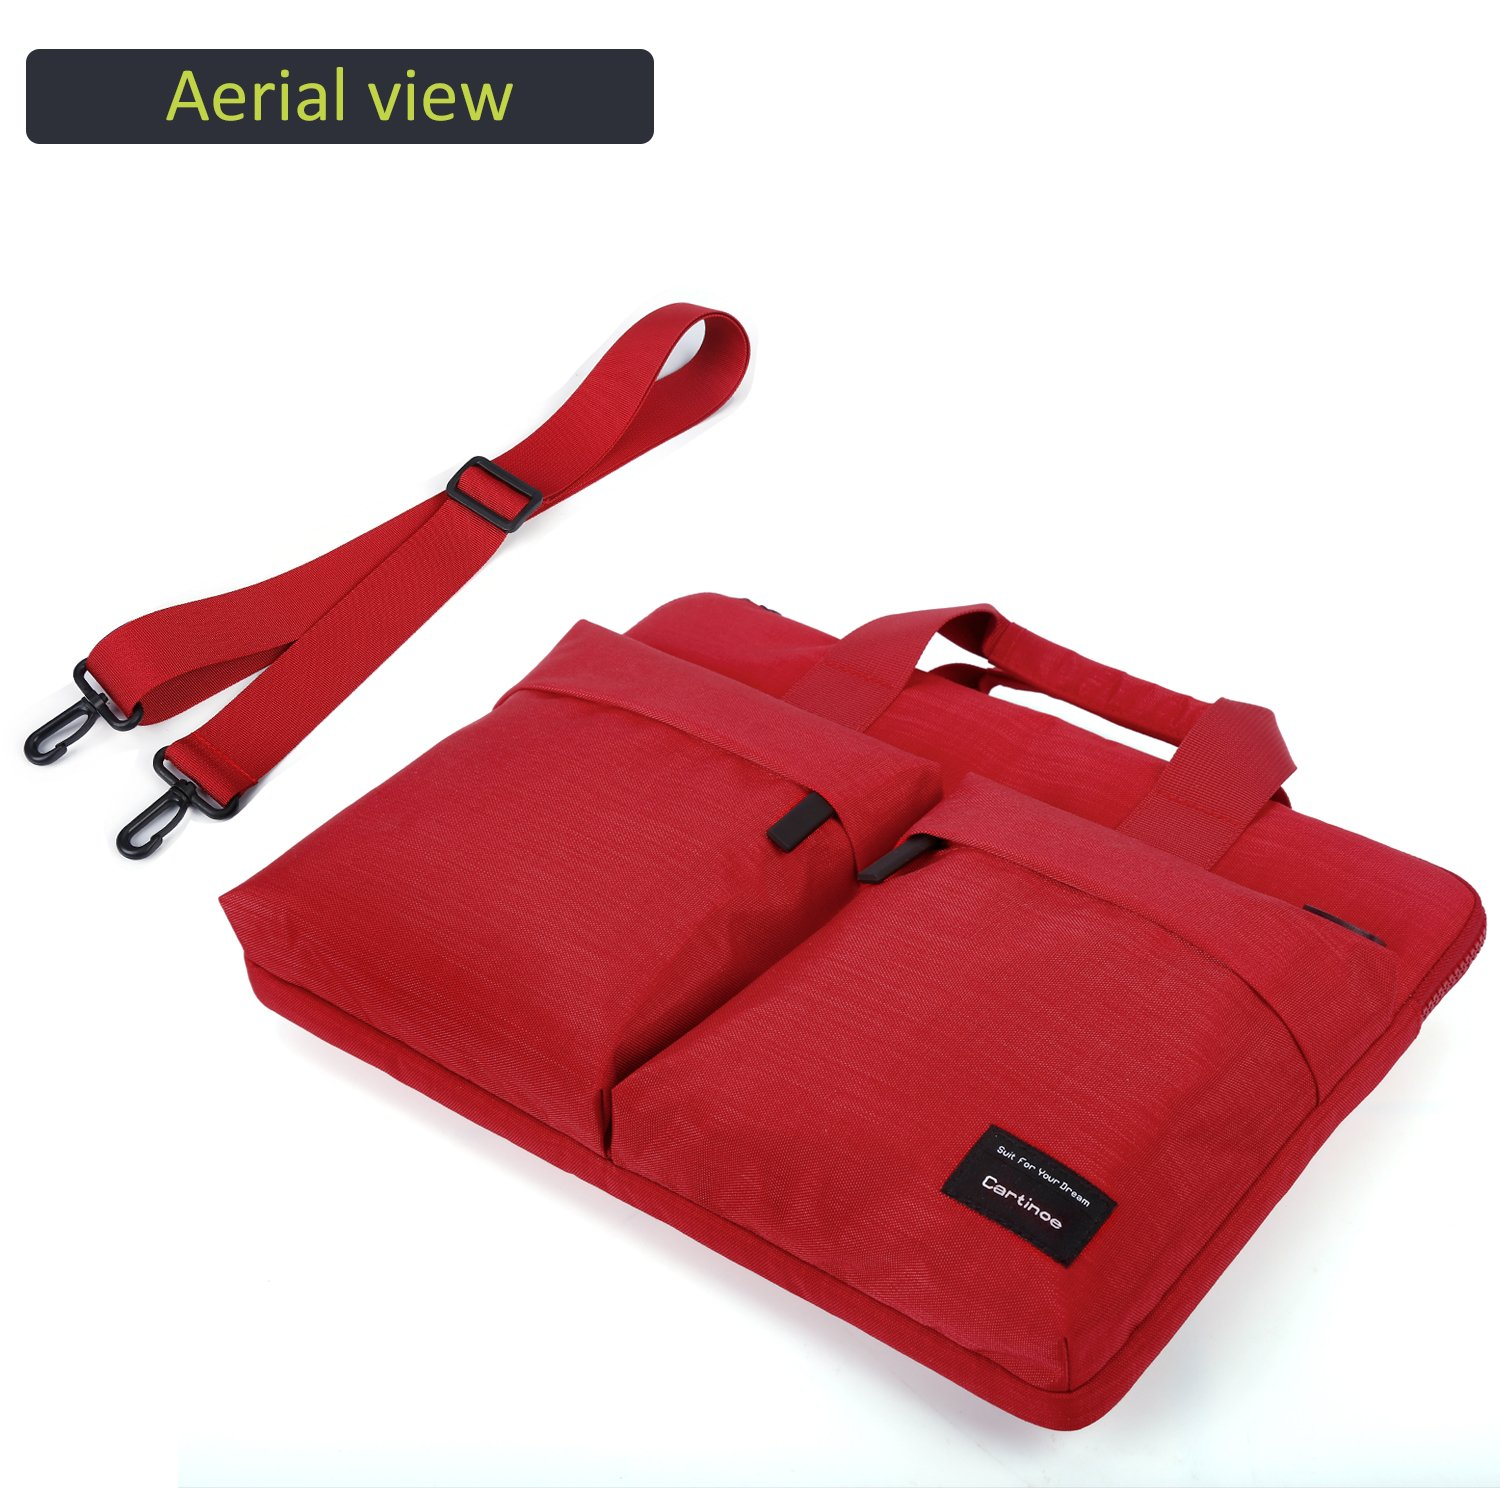 Cartinoe City 14-15 inch Laptop Briefcase Messenger Bag, Professional Business Water Resistant Shoulder bag for Apple 15.4 Inch MacBook Touchbar 15, Lenovo Dell ASUS HP Acer Chromebook 14, Red by Youpeck (Image #4)